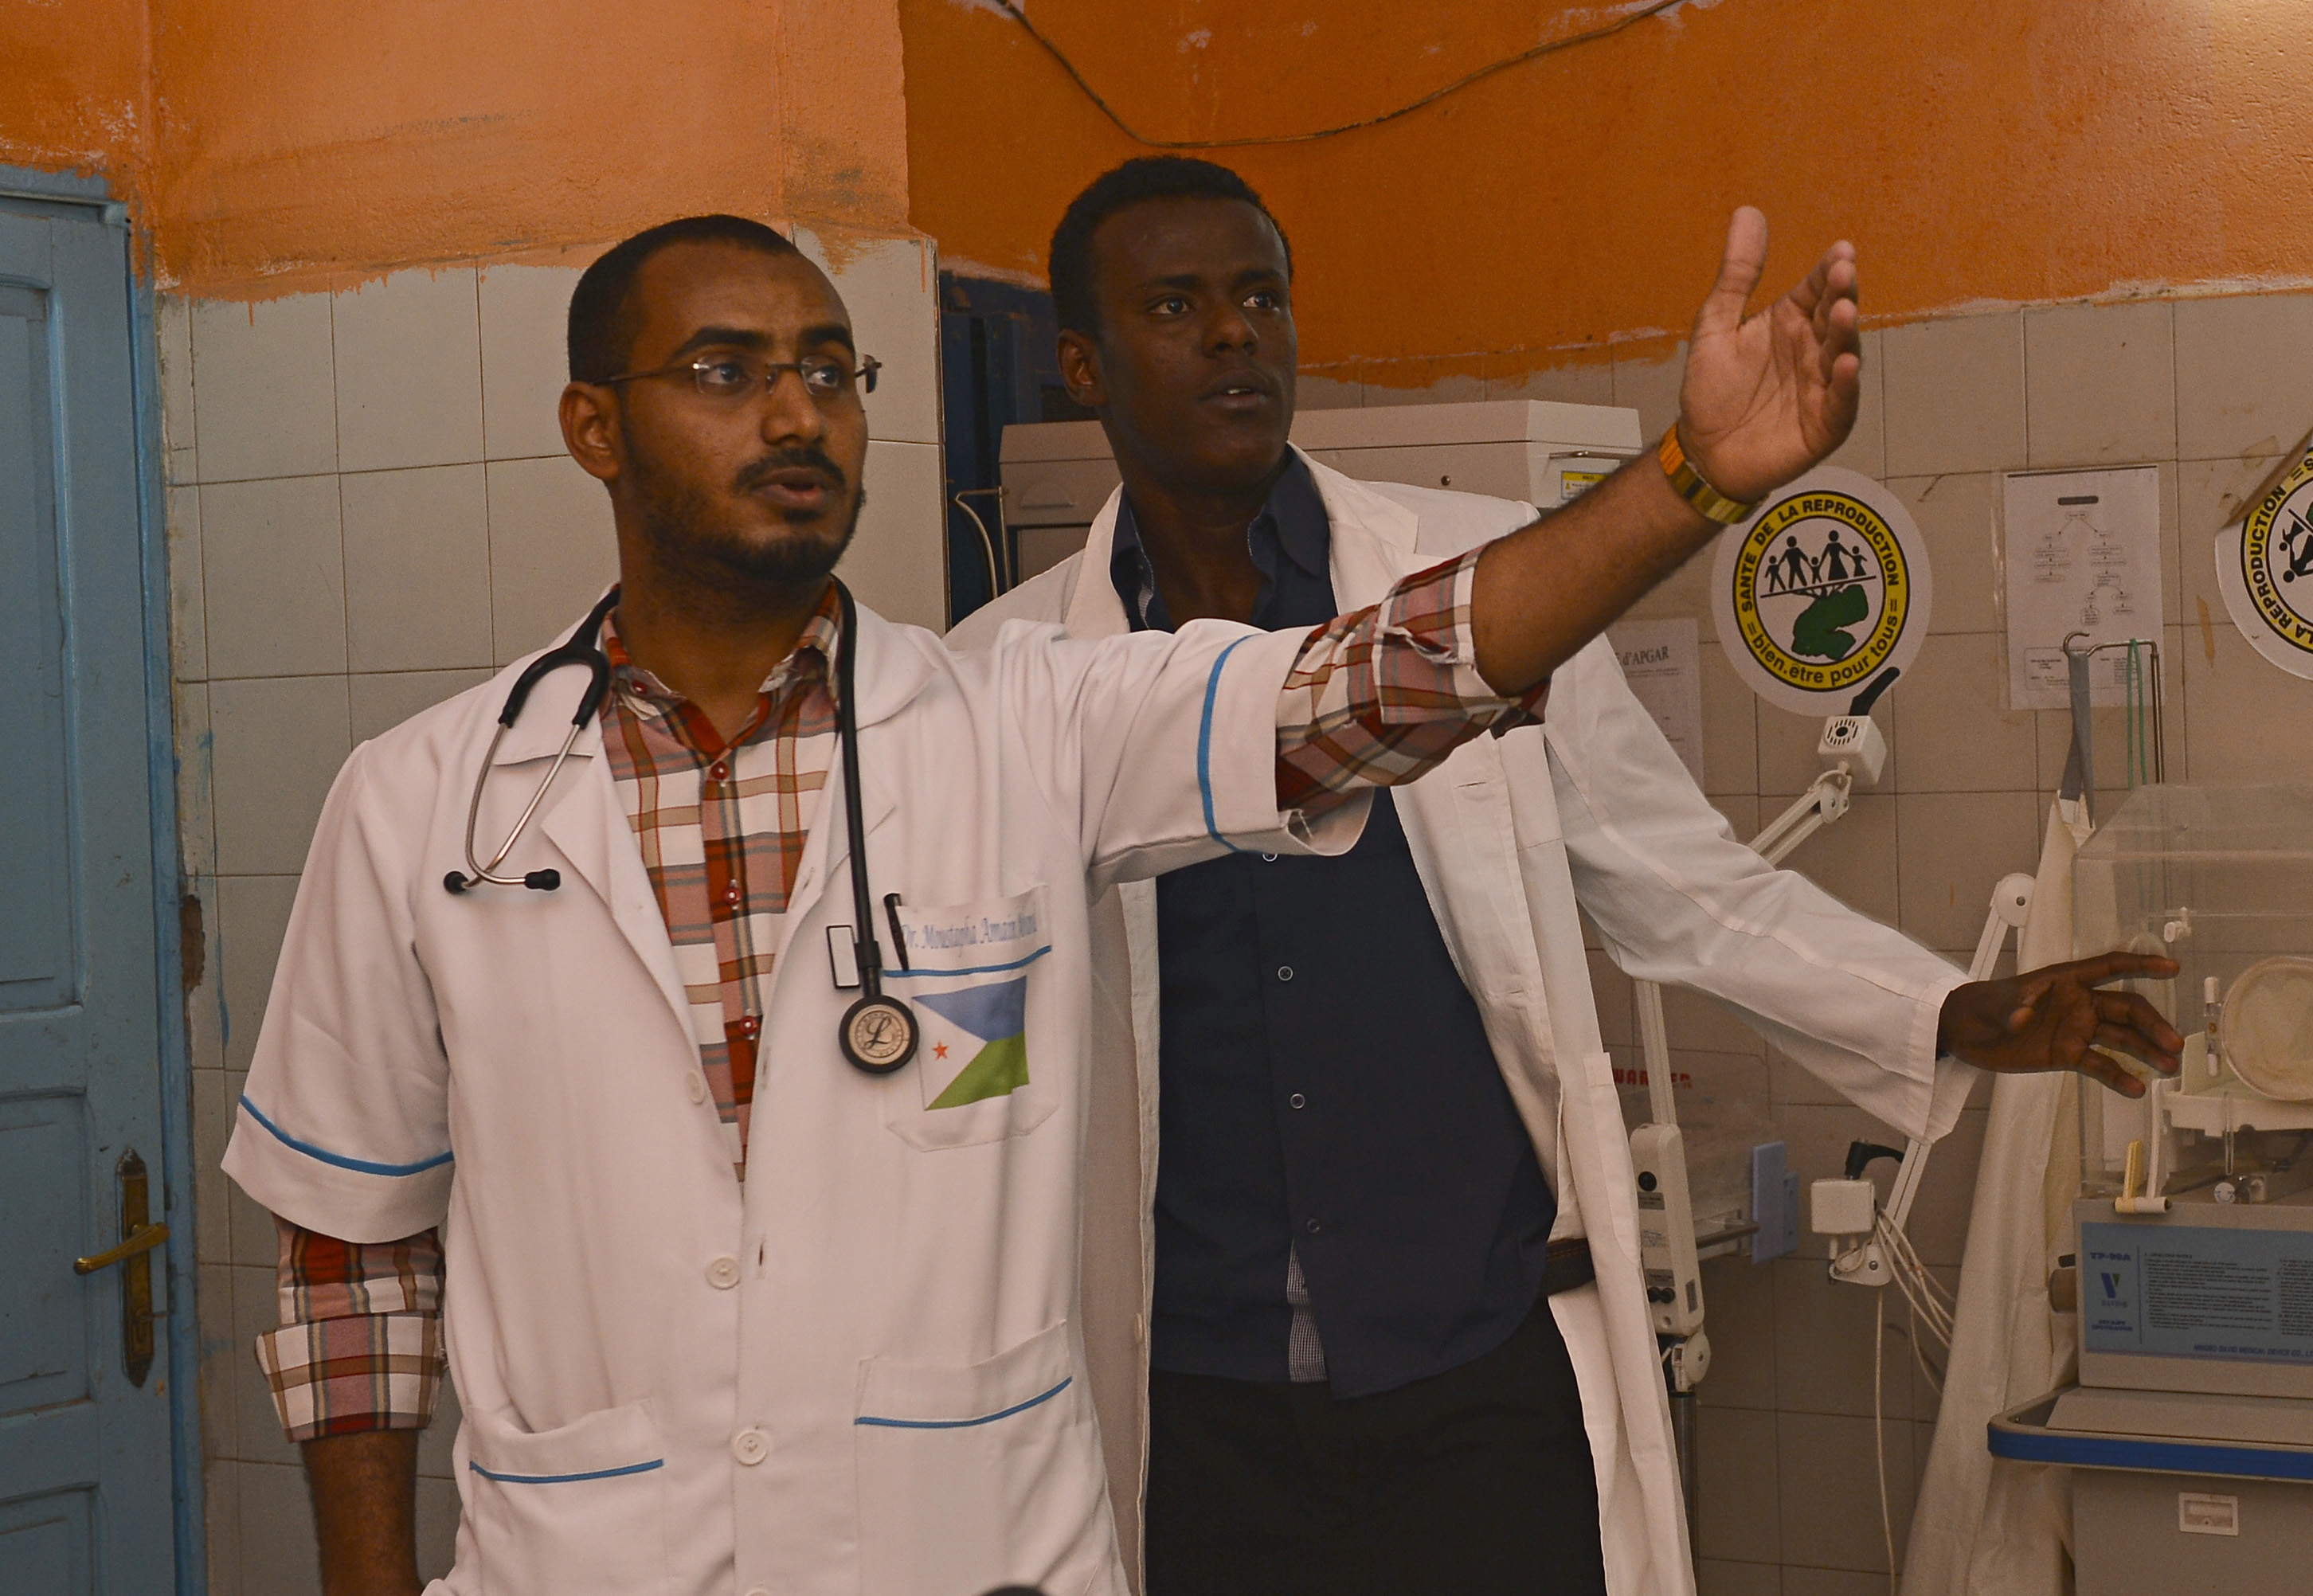 From left, Dr. Moustapha Amain Mouhammad and Dr. Abdi Alias, physicians at the Dikhil Regional Hospital talk about the facility during a tour with Combined Joint Task Force-Horn of Africa members in Dikhil, Djibouti, July 7, 2015. CJTF-HOA members visited the hospital to assess its public health, environmental and preventative medicine capacities and capabilities. (U.S. Air Force photo by Senior Airman Nesha Humes)